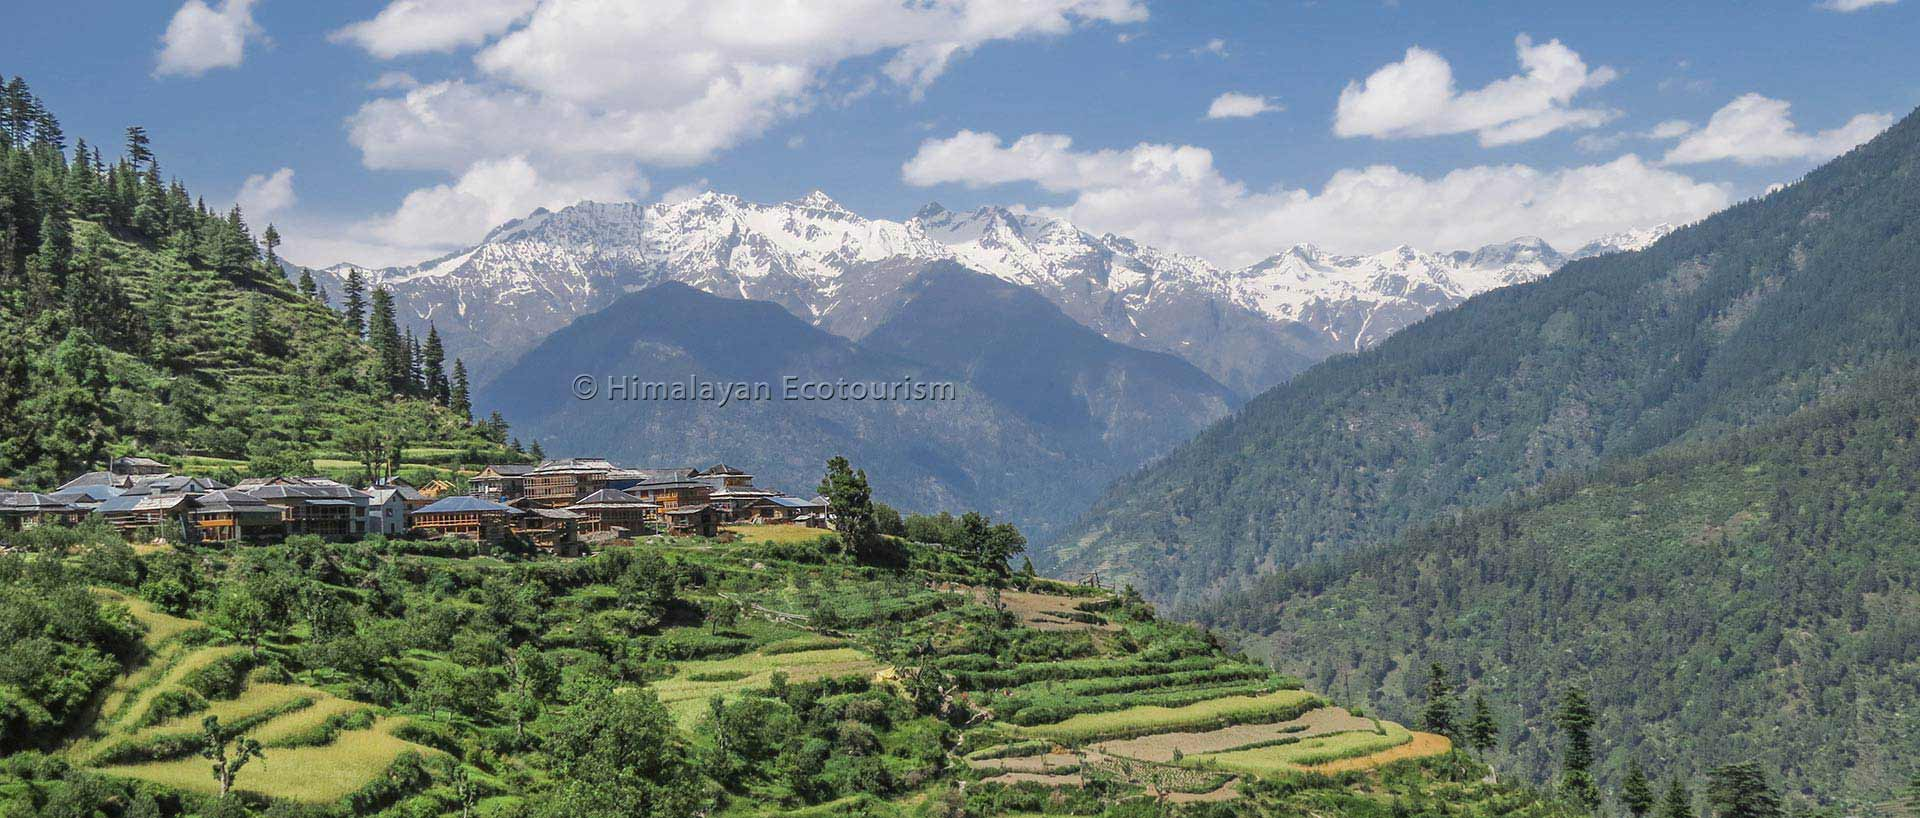 Photo of the Tirthan valley